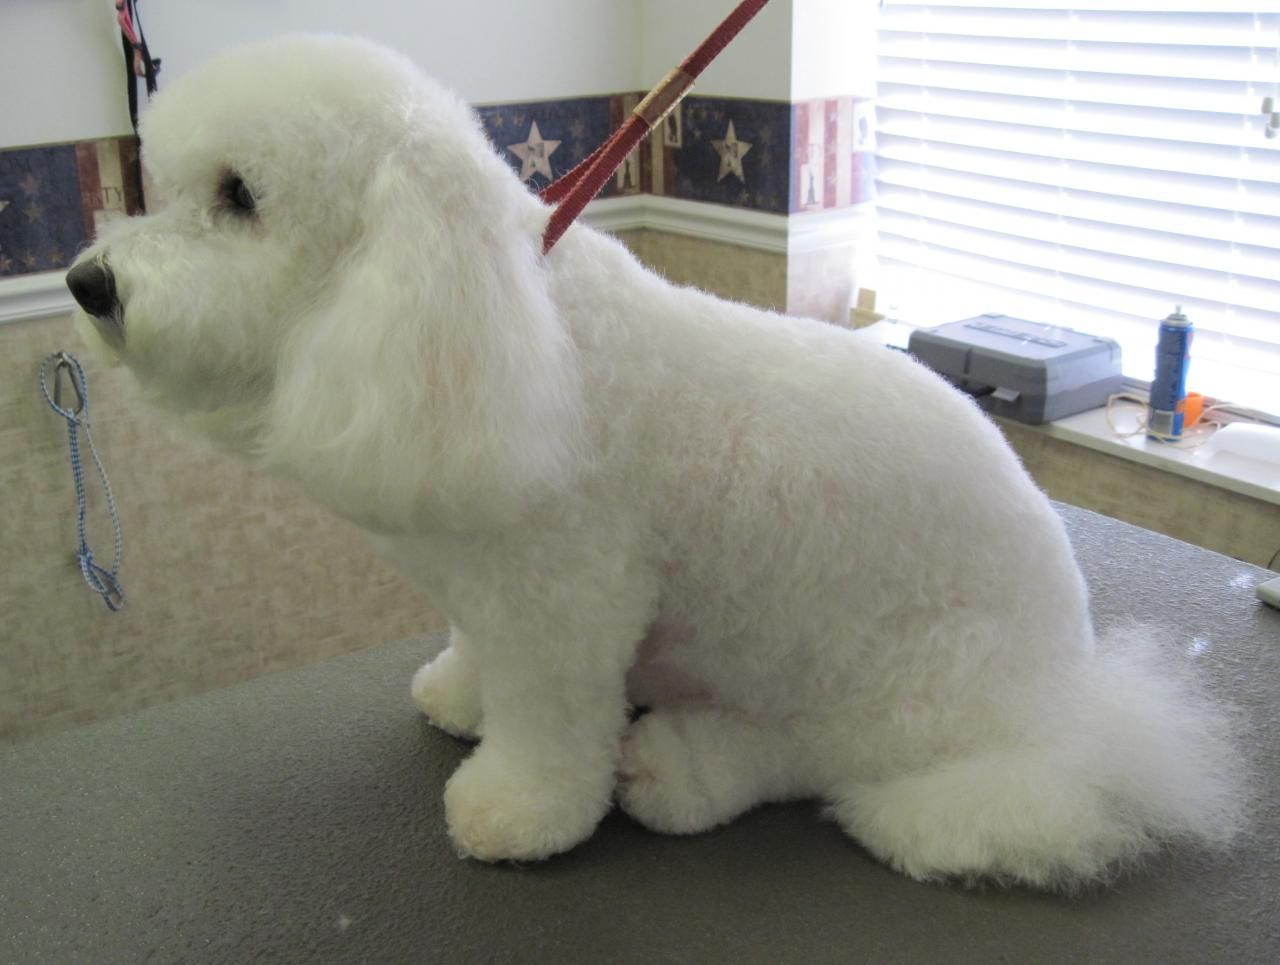 bichon frise haircut - google search | bichon | pinterest | bichon